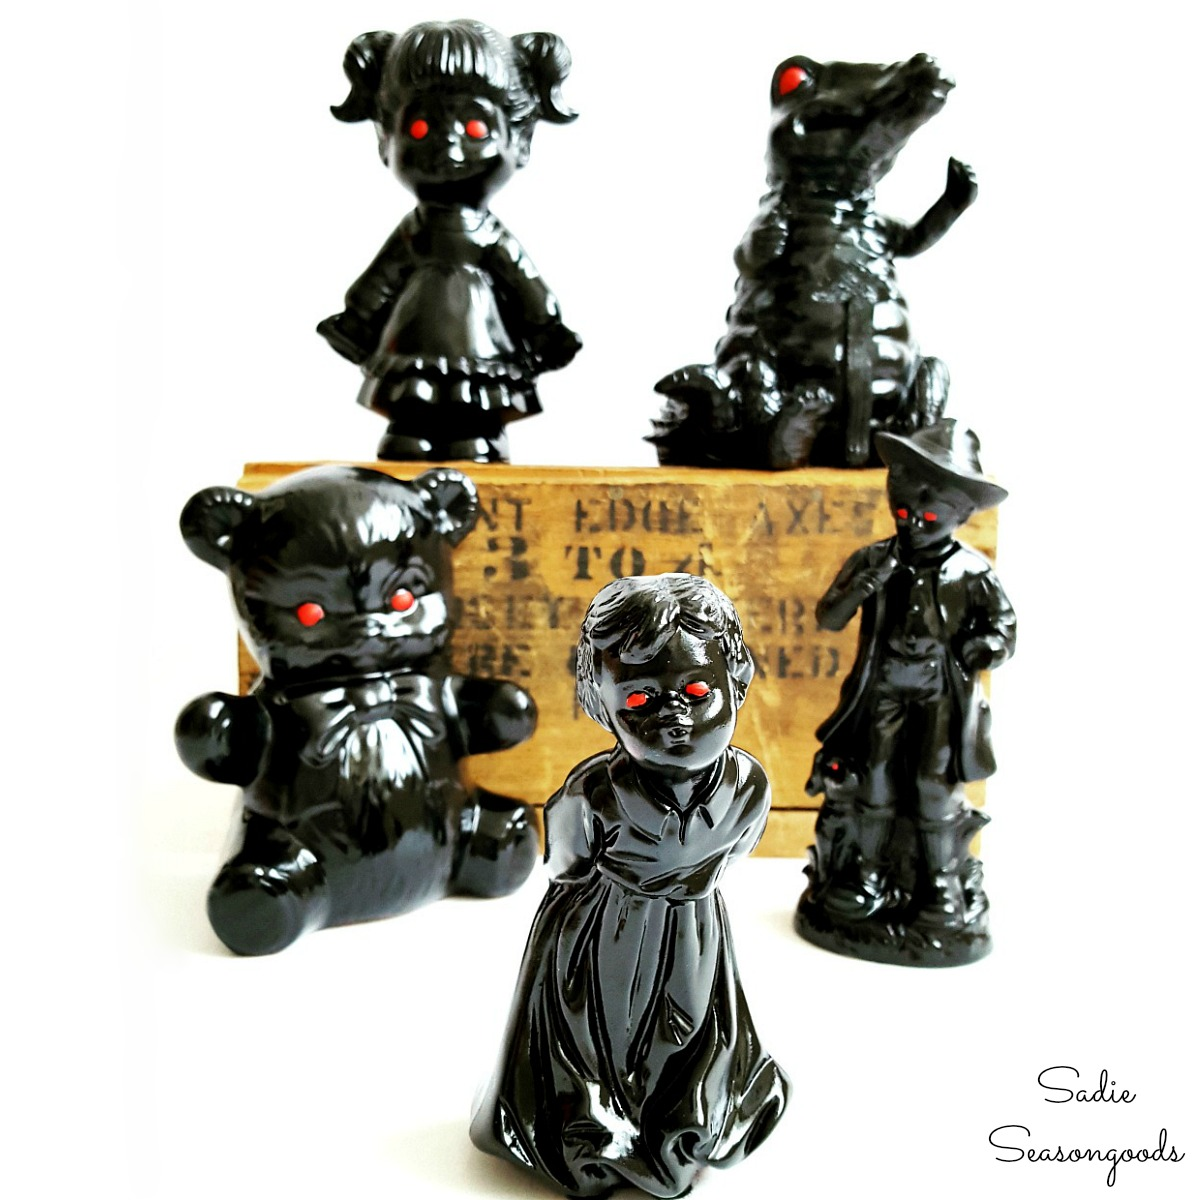 Ceramic figurines from the thrift store that are Halloween figurines and haunted objects by Sadie Seasongoods